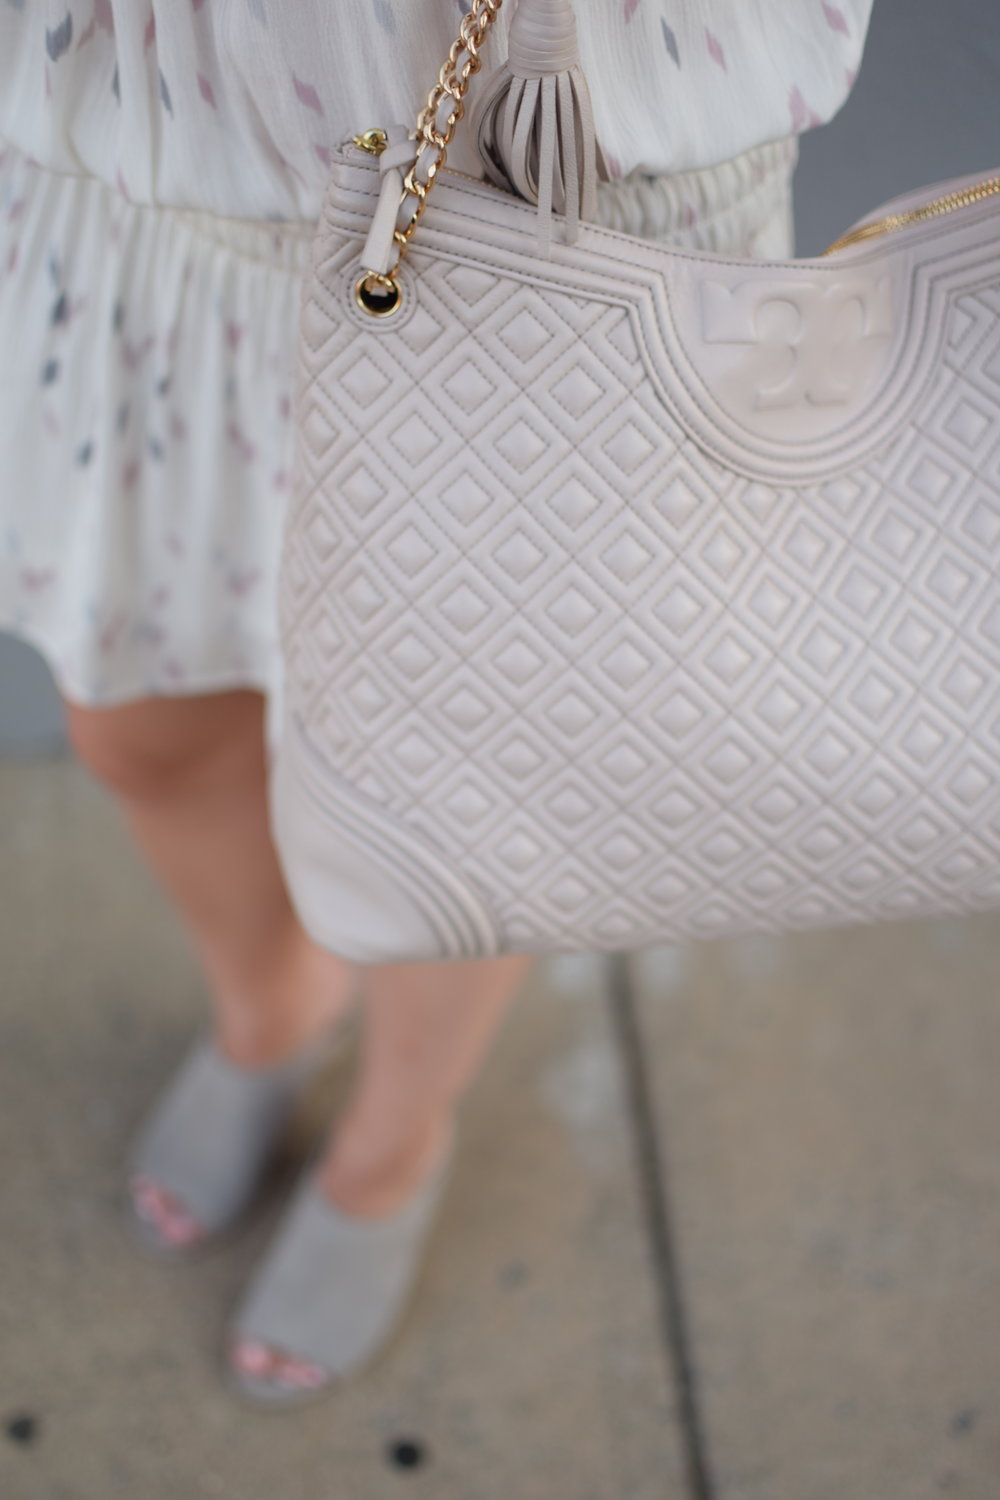 bishop & young drop waist dress / grey mules / tory burch bag / summer outfit idea